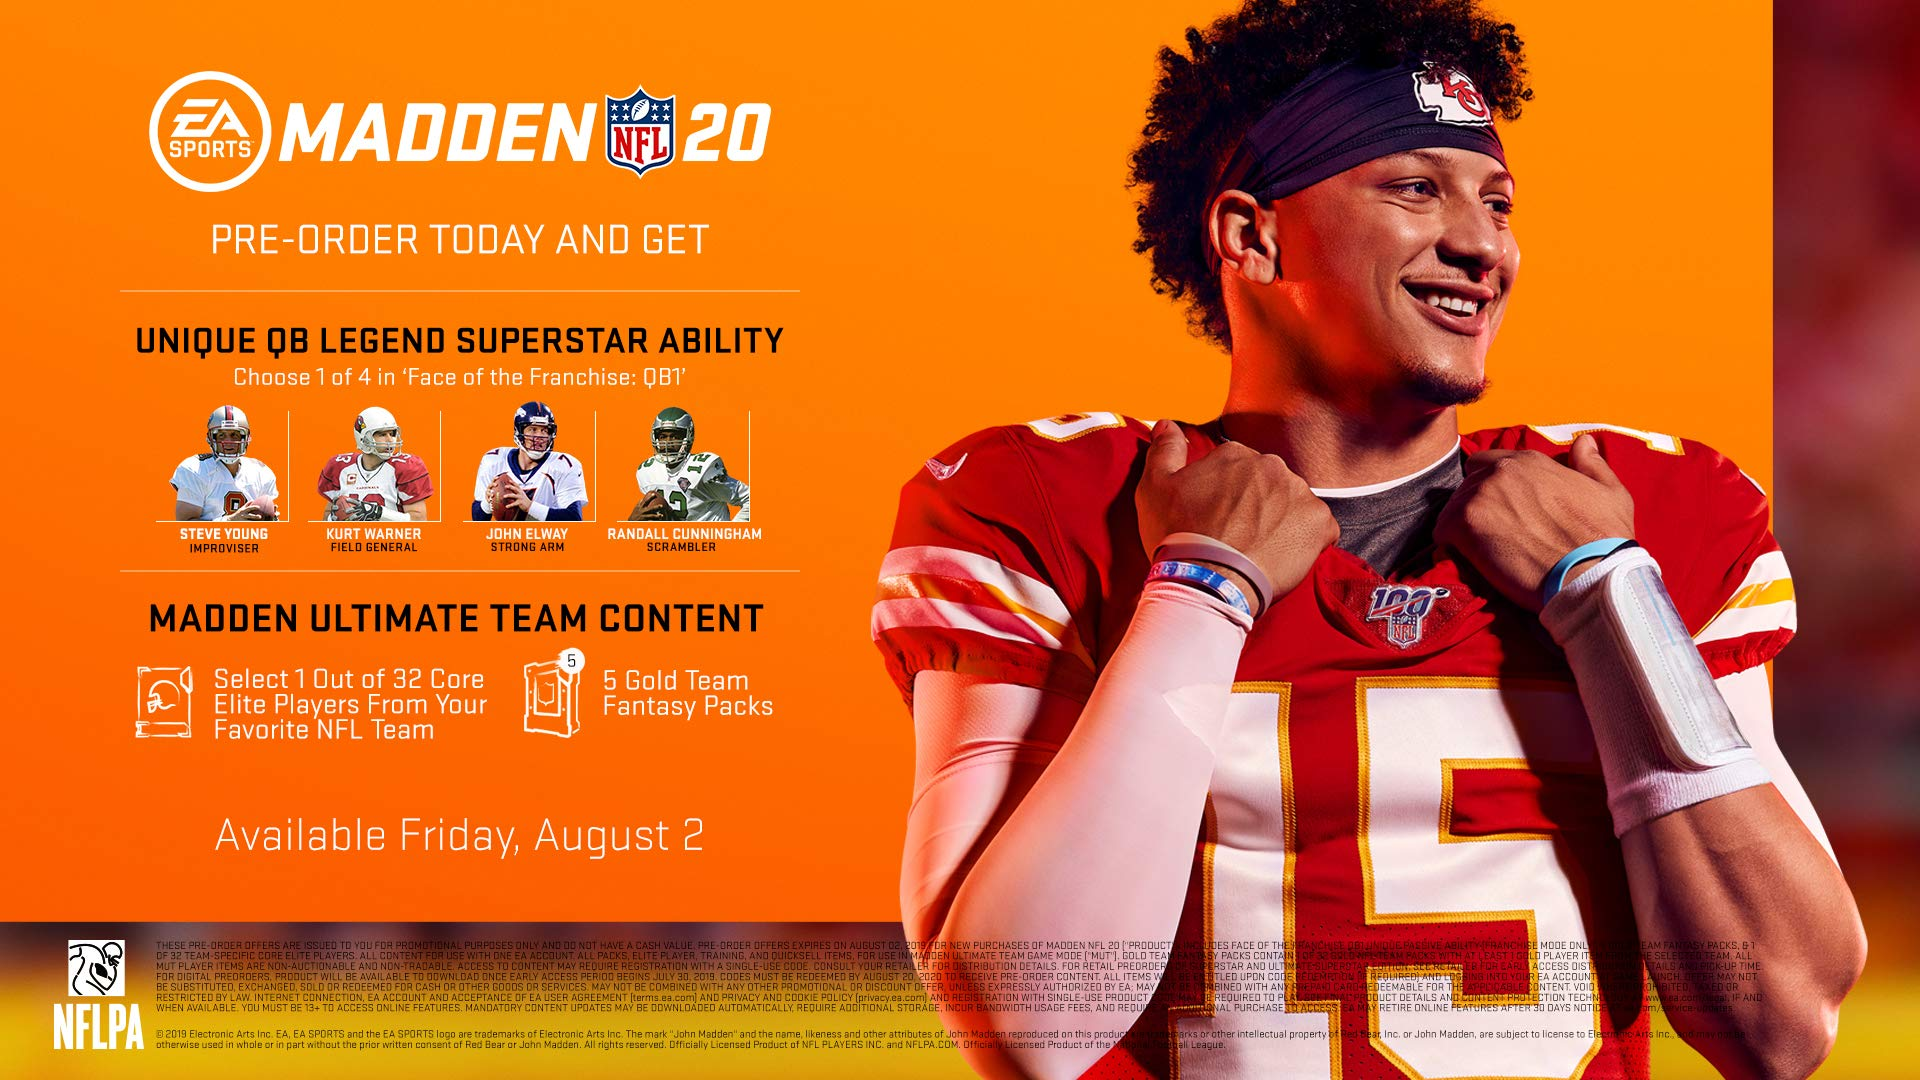 8d2b89a4a79 Pre-order bonus: Pre-order the Madden NFL 20 Superstar Edition and receive  5 Gold Team Fantasy Packs, Your Choice of 1 out of 32 core Elite Players  from ...